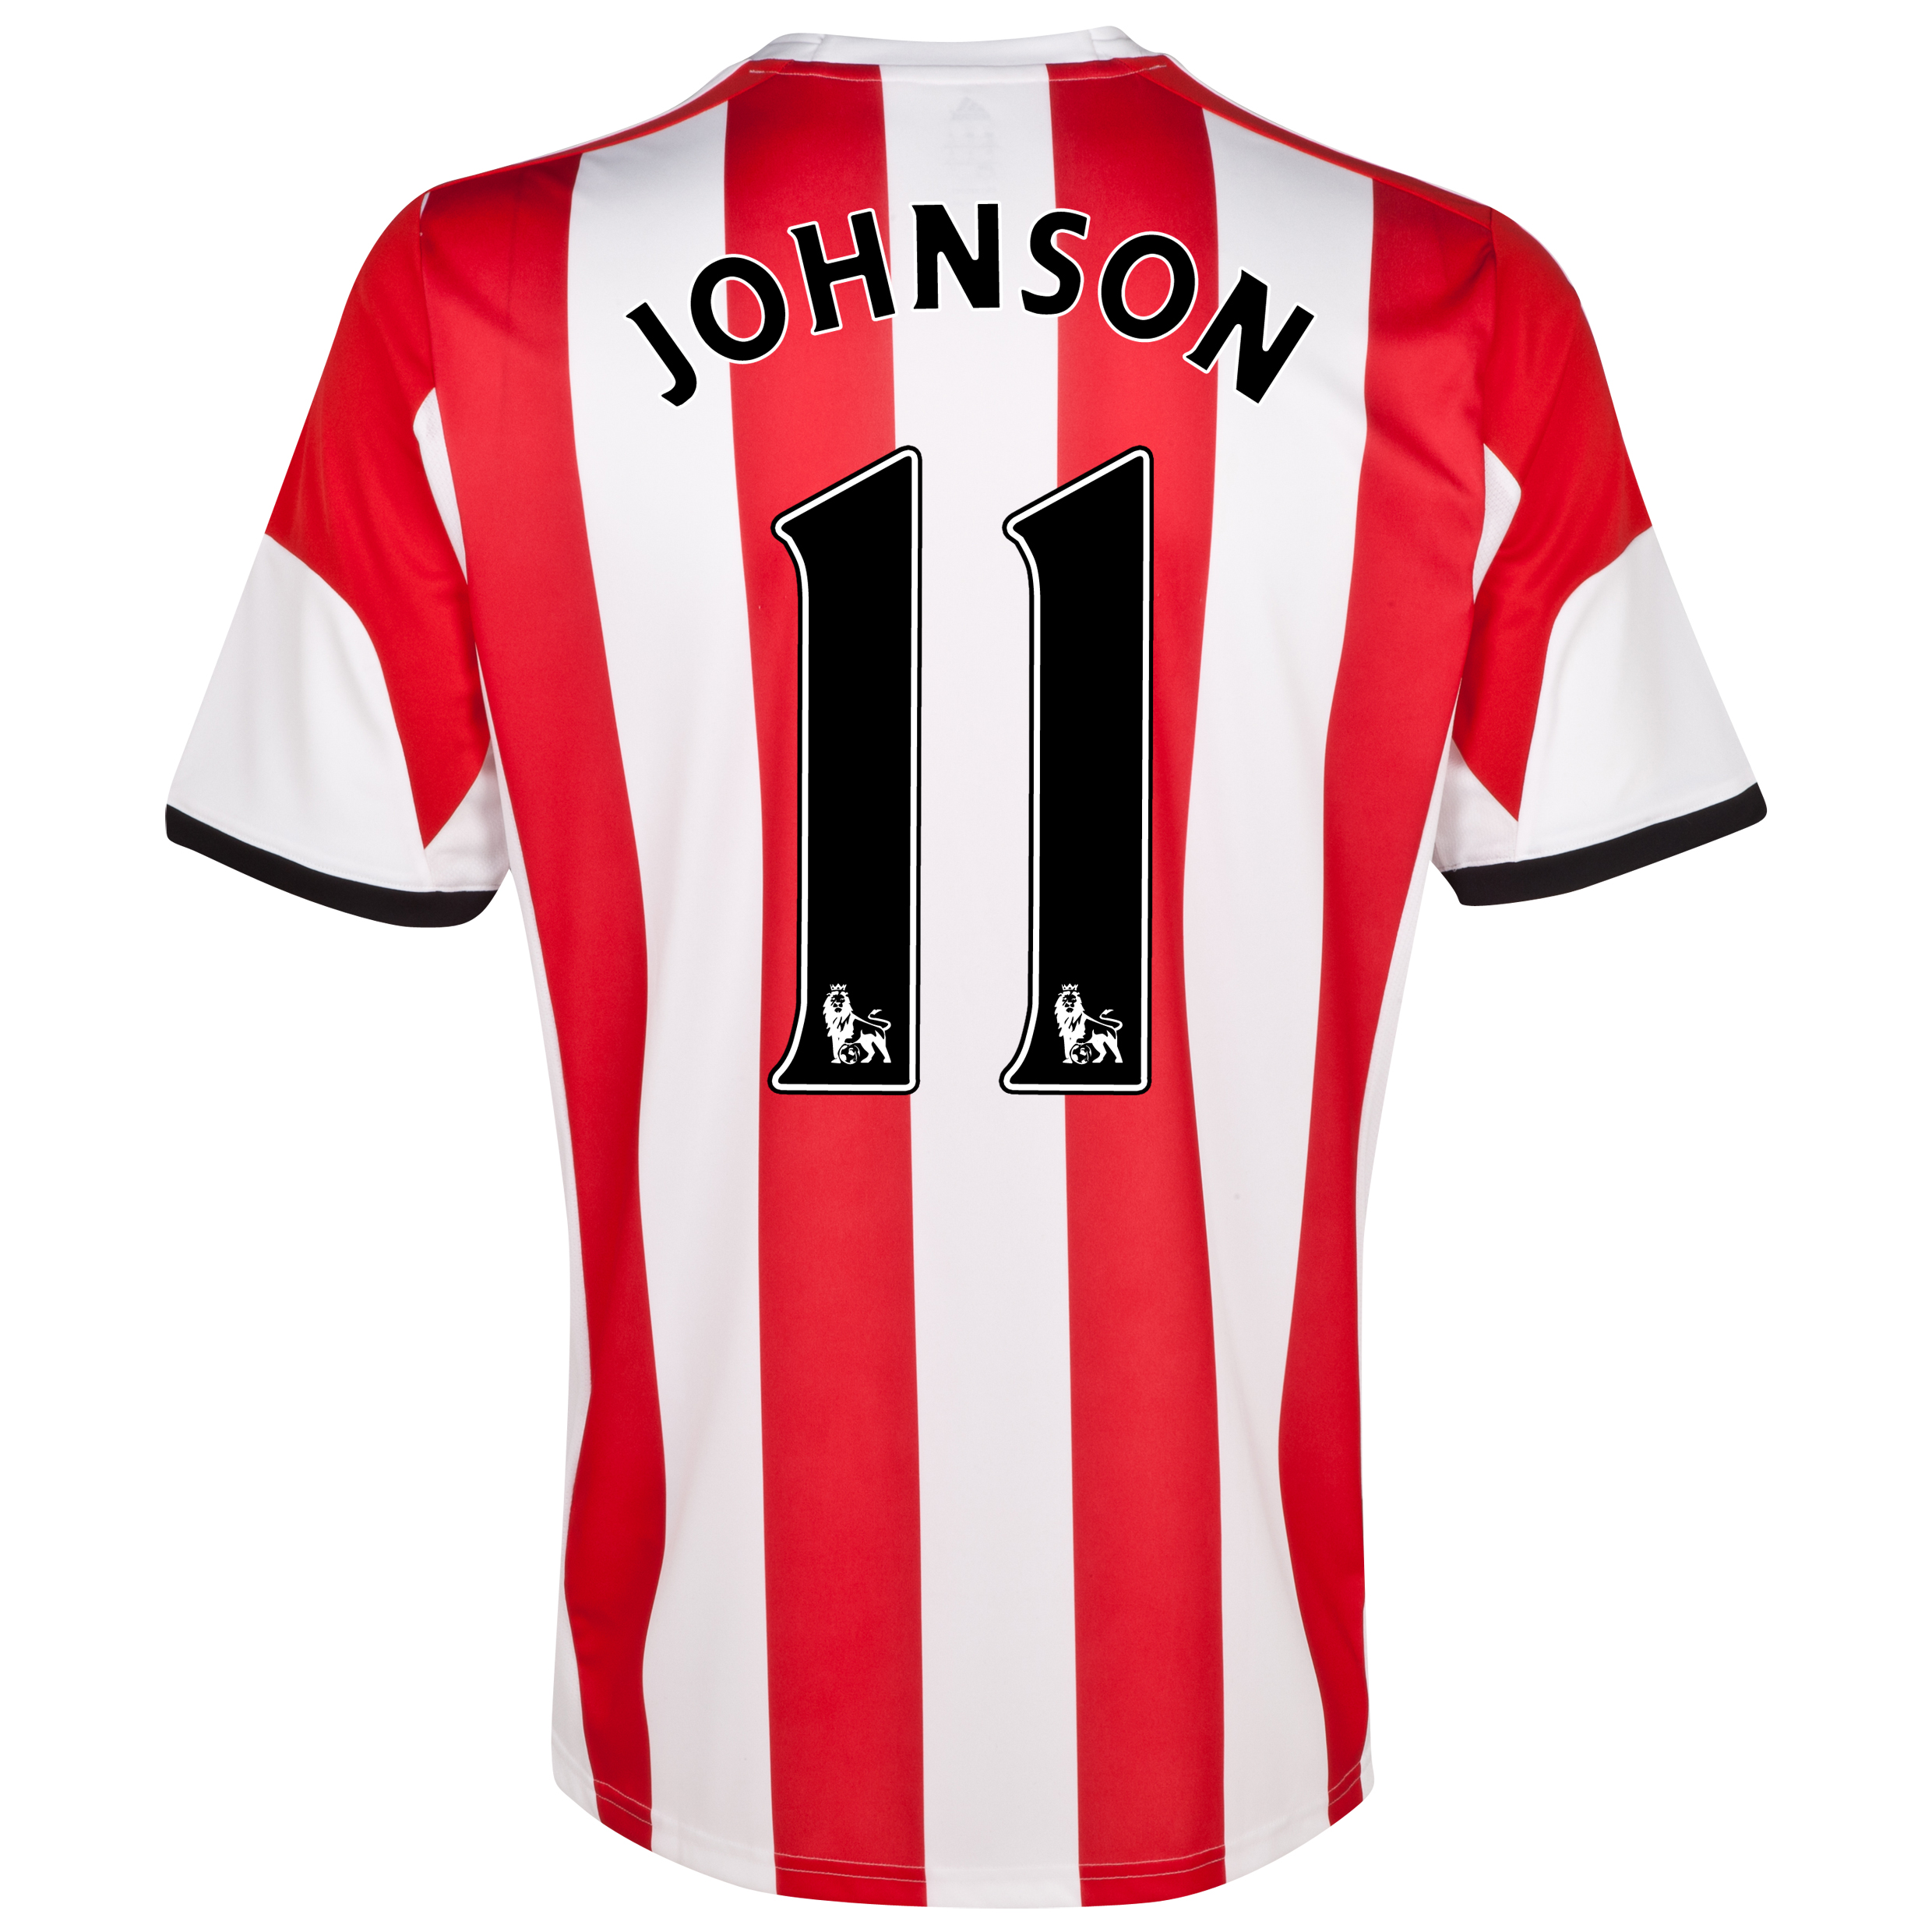 Sunderland Home Shirt 2013/14 - Junior with Johnson 11 printing